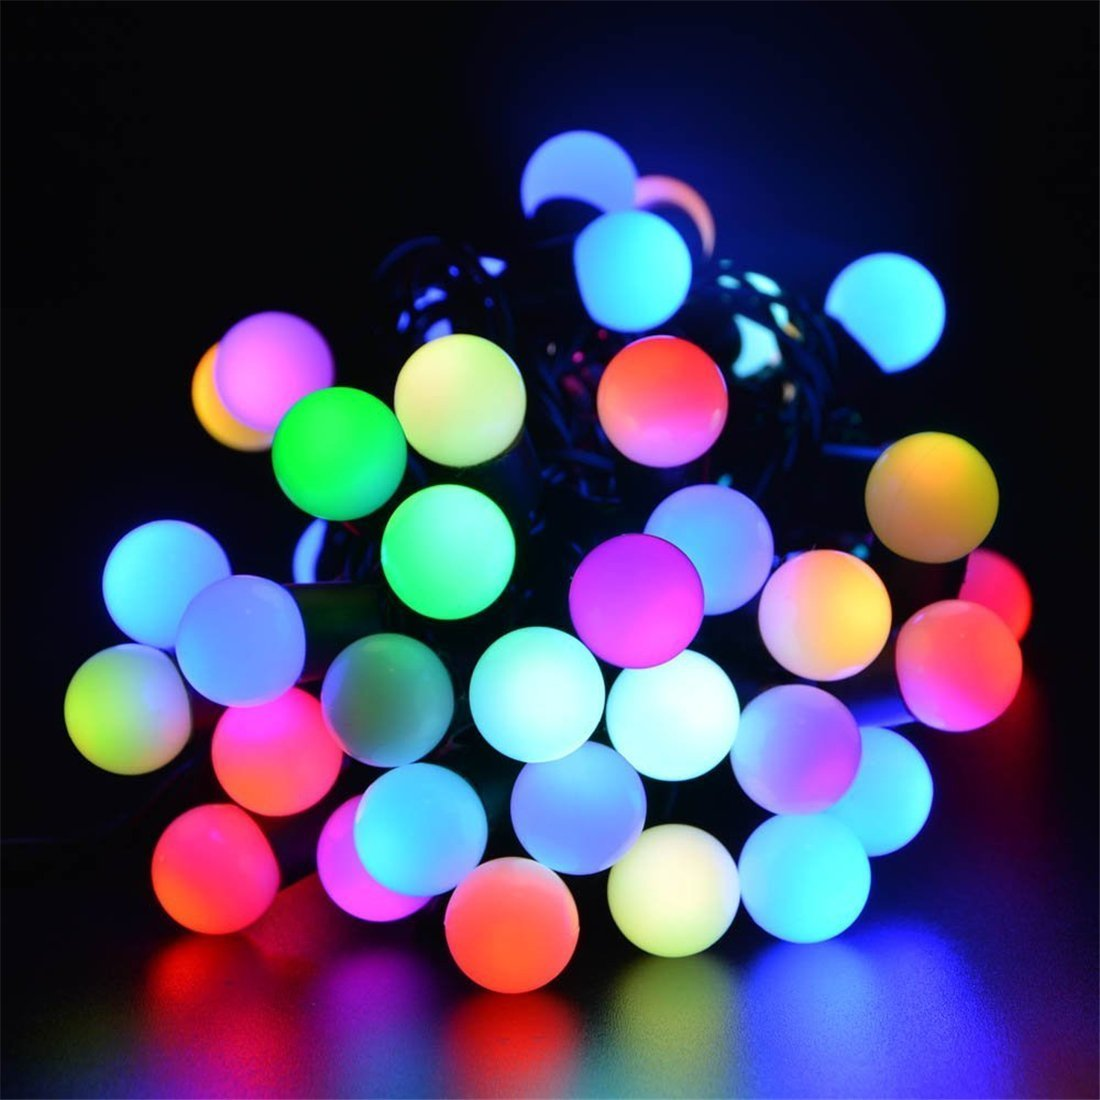 blossom party fairy lights home solar dp garden cool holiday patio and decor lawn white outdoor qedertek christmas for led decorations string